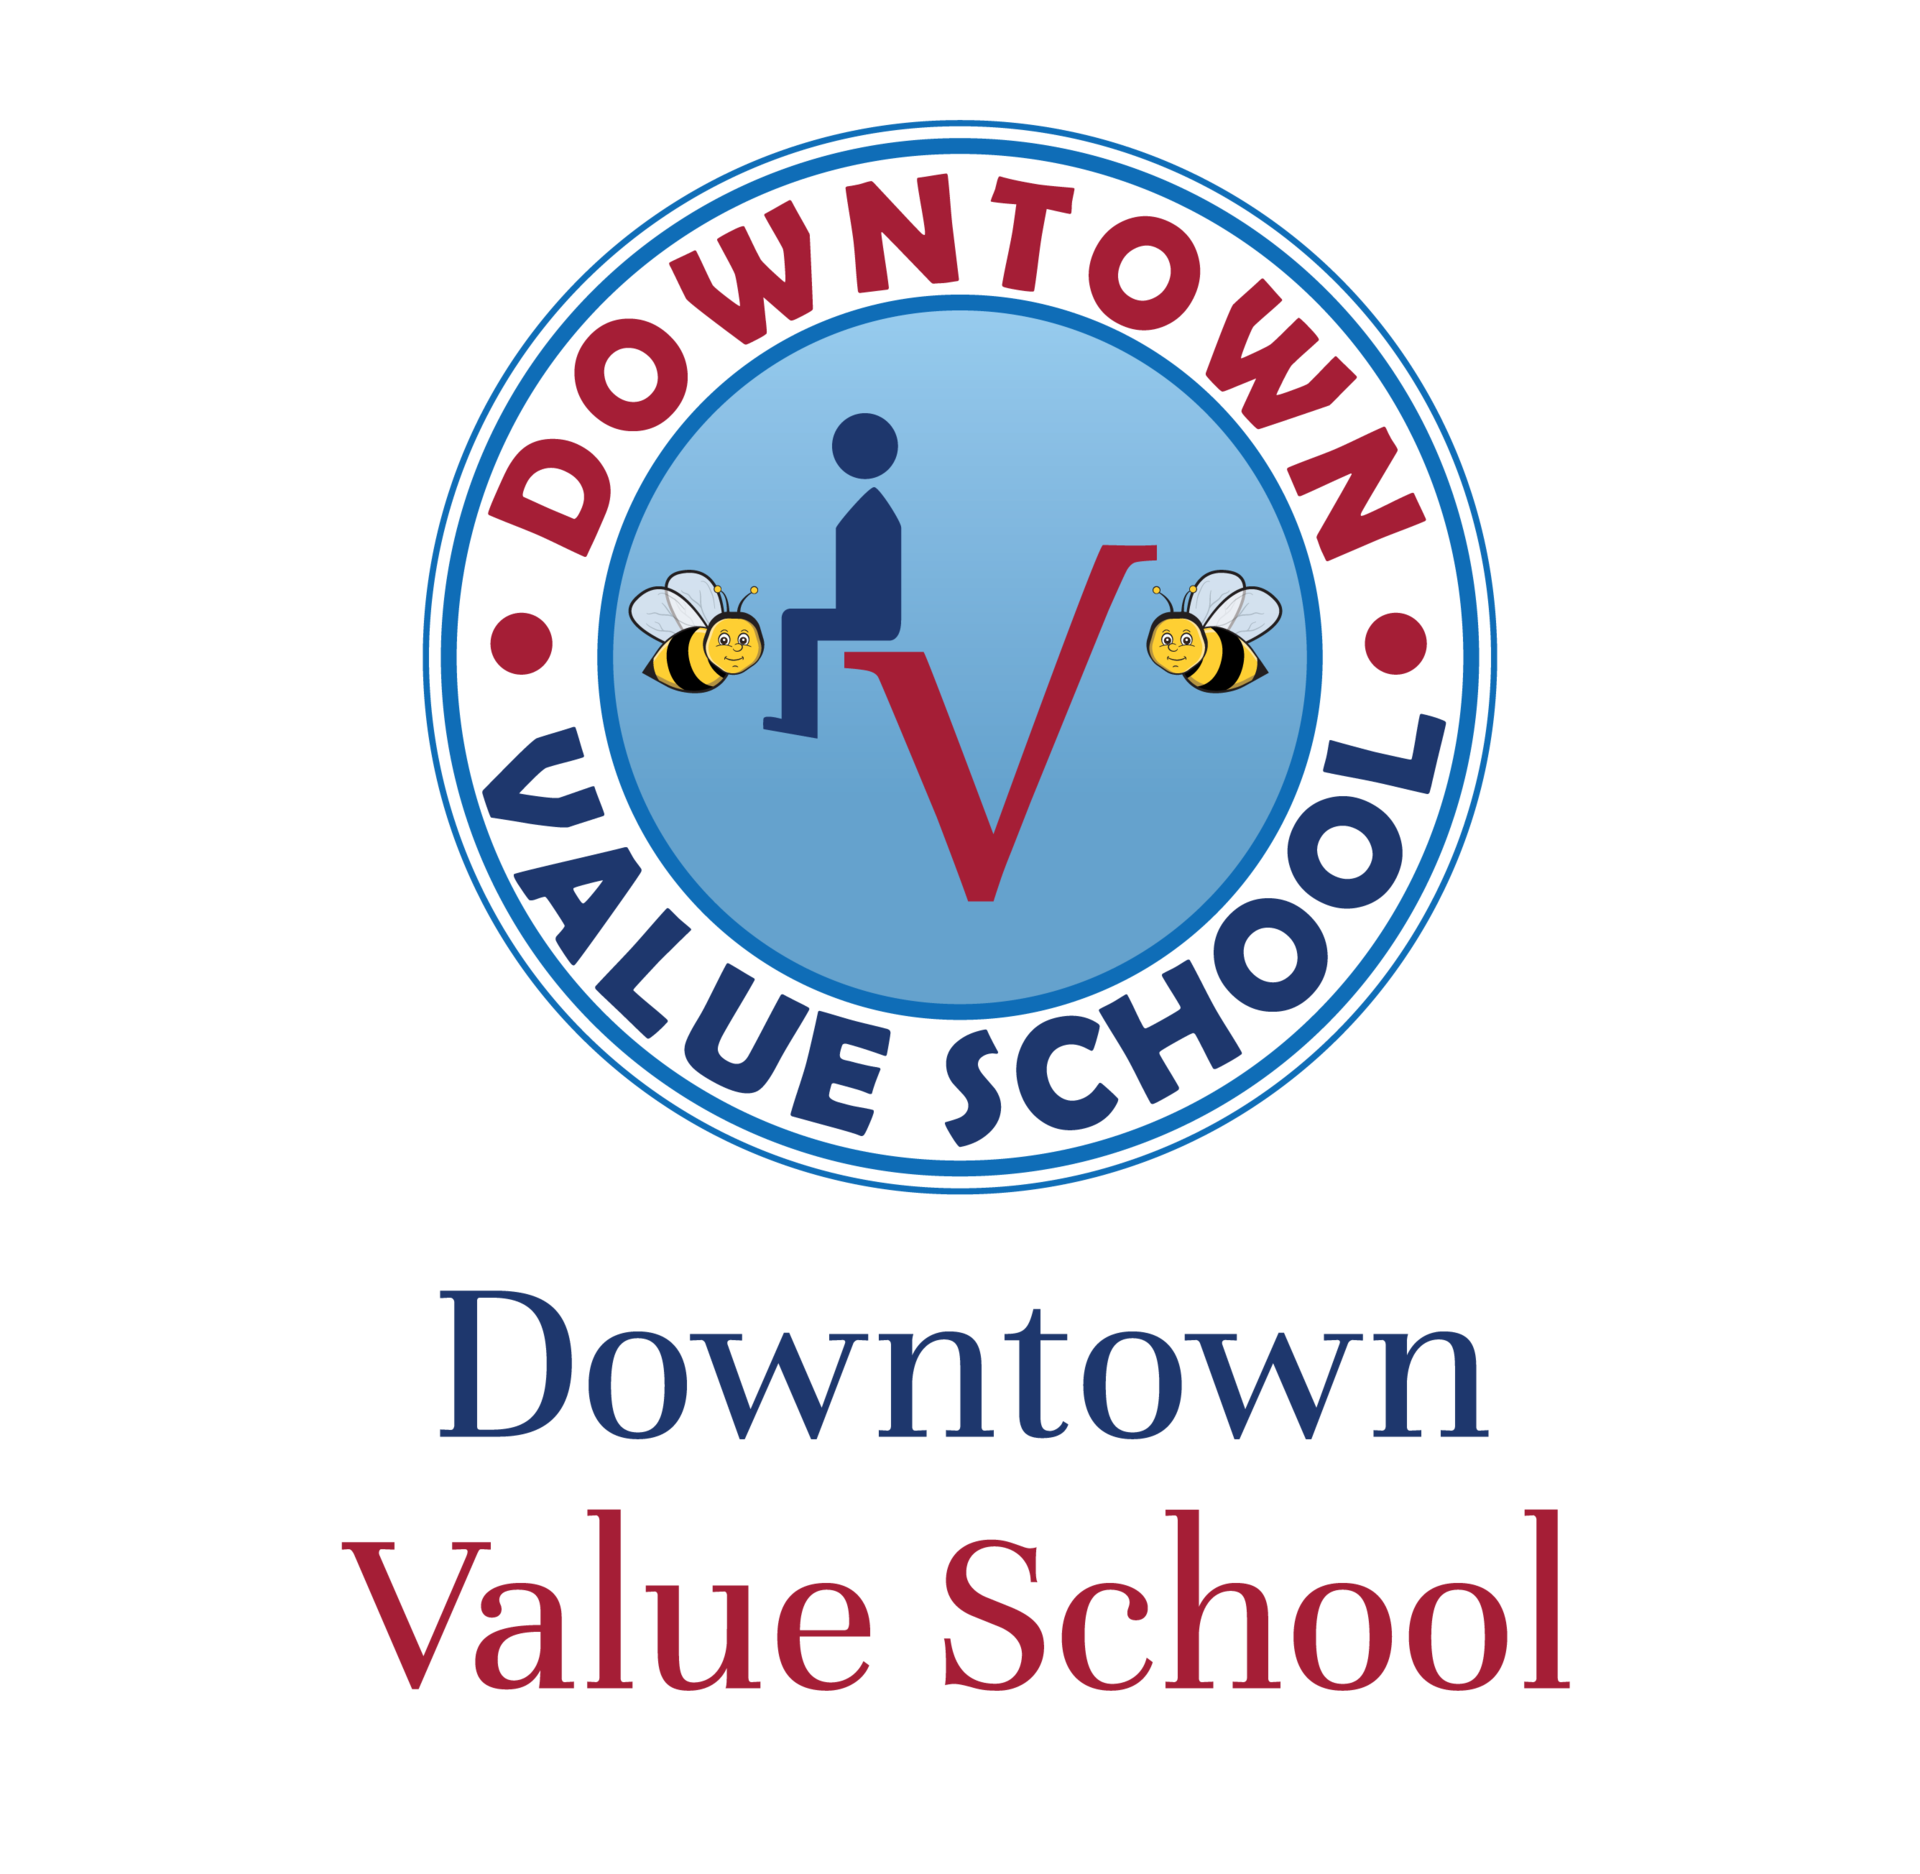 Apply to Downtown Value School